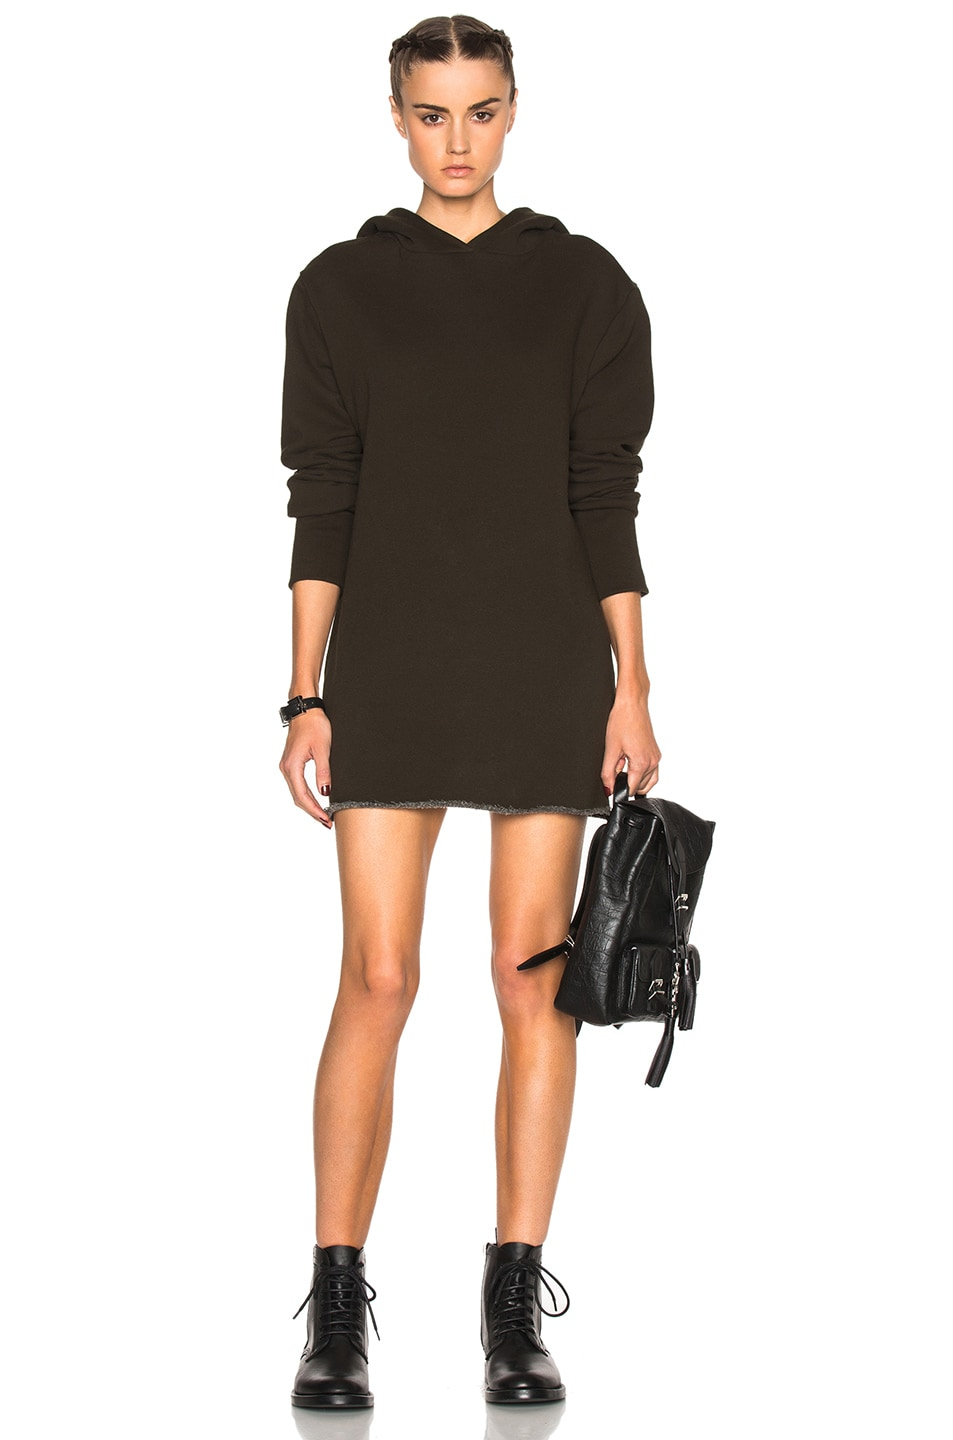 Image 1 of RtA Celine Sweatshirt Dress in Unit